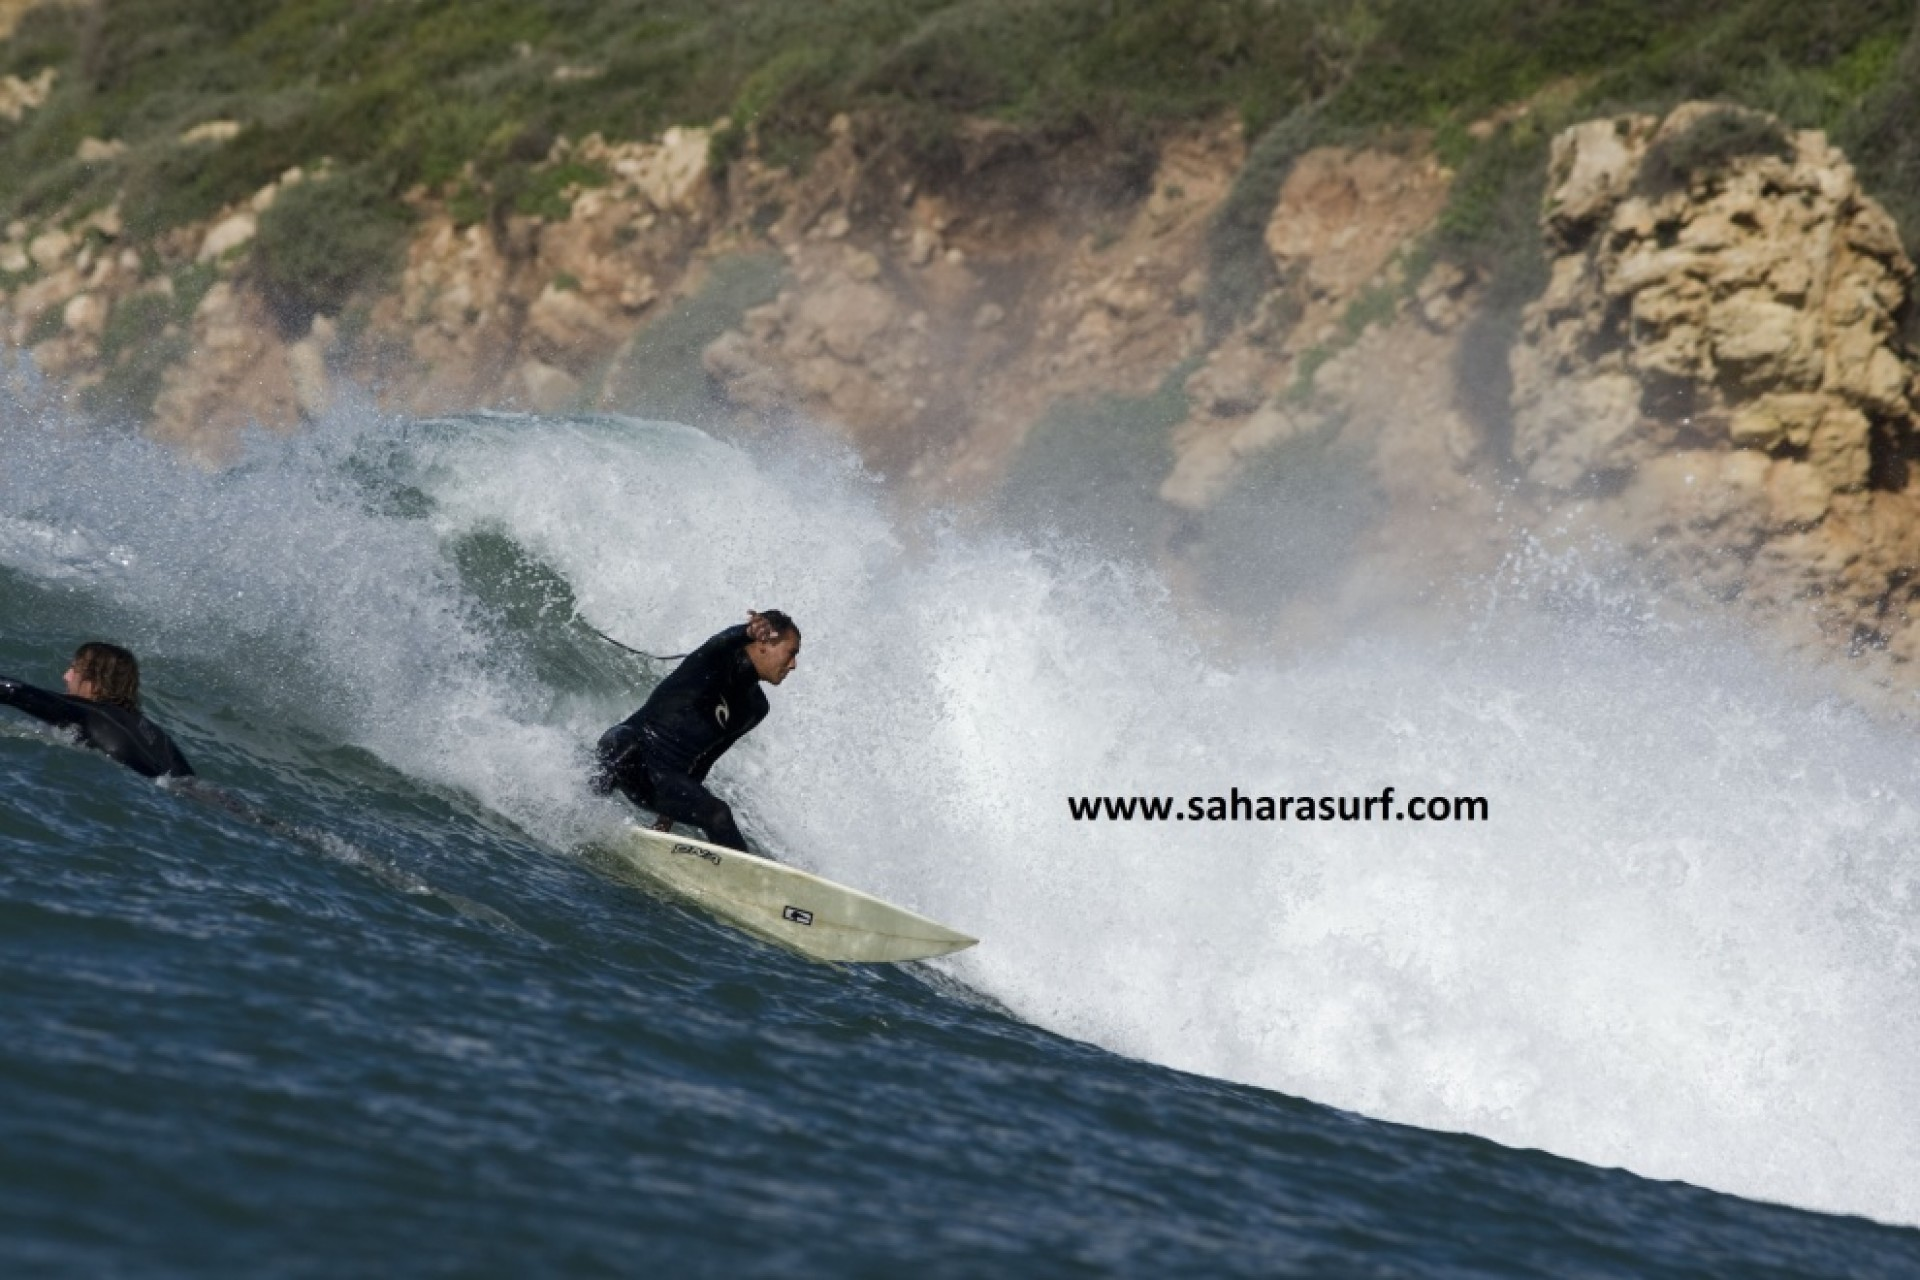 www.saharasurf.com's photo of Safi